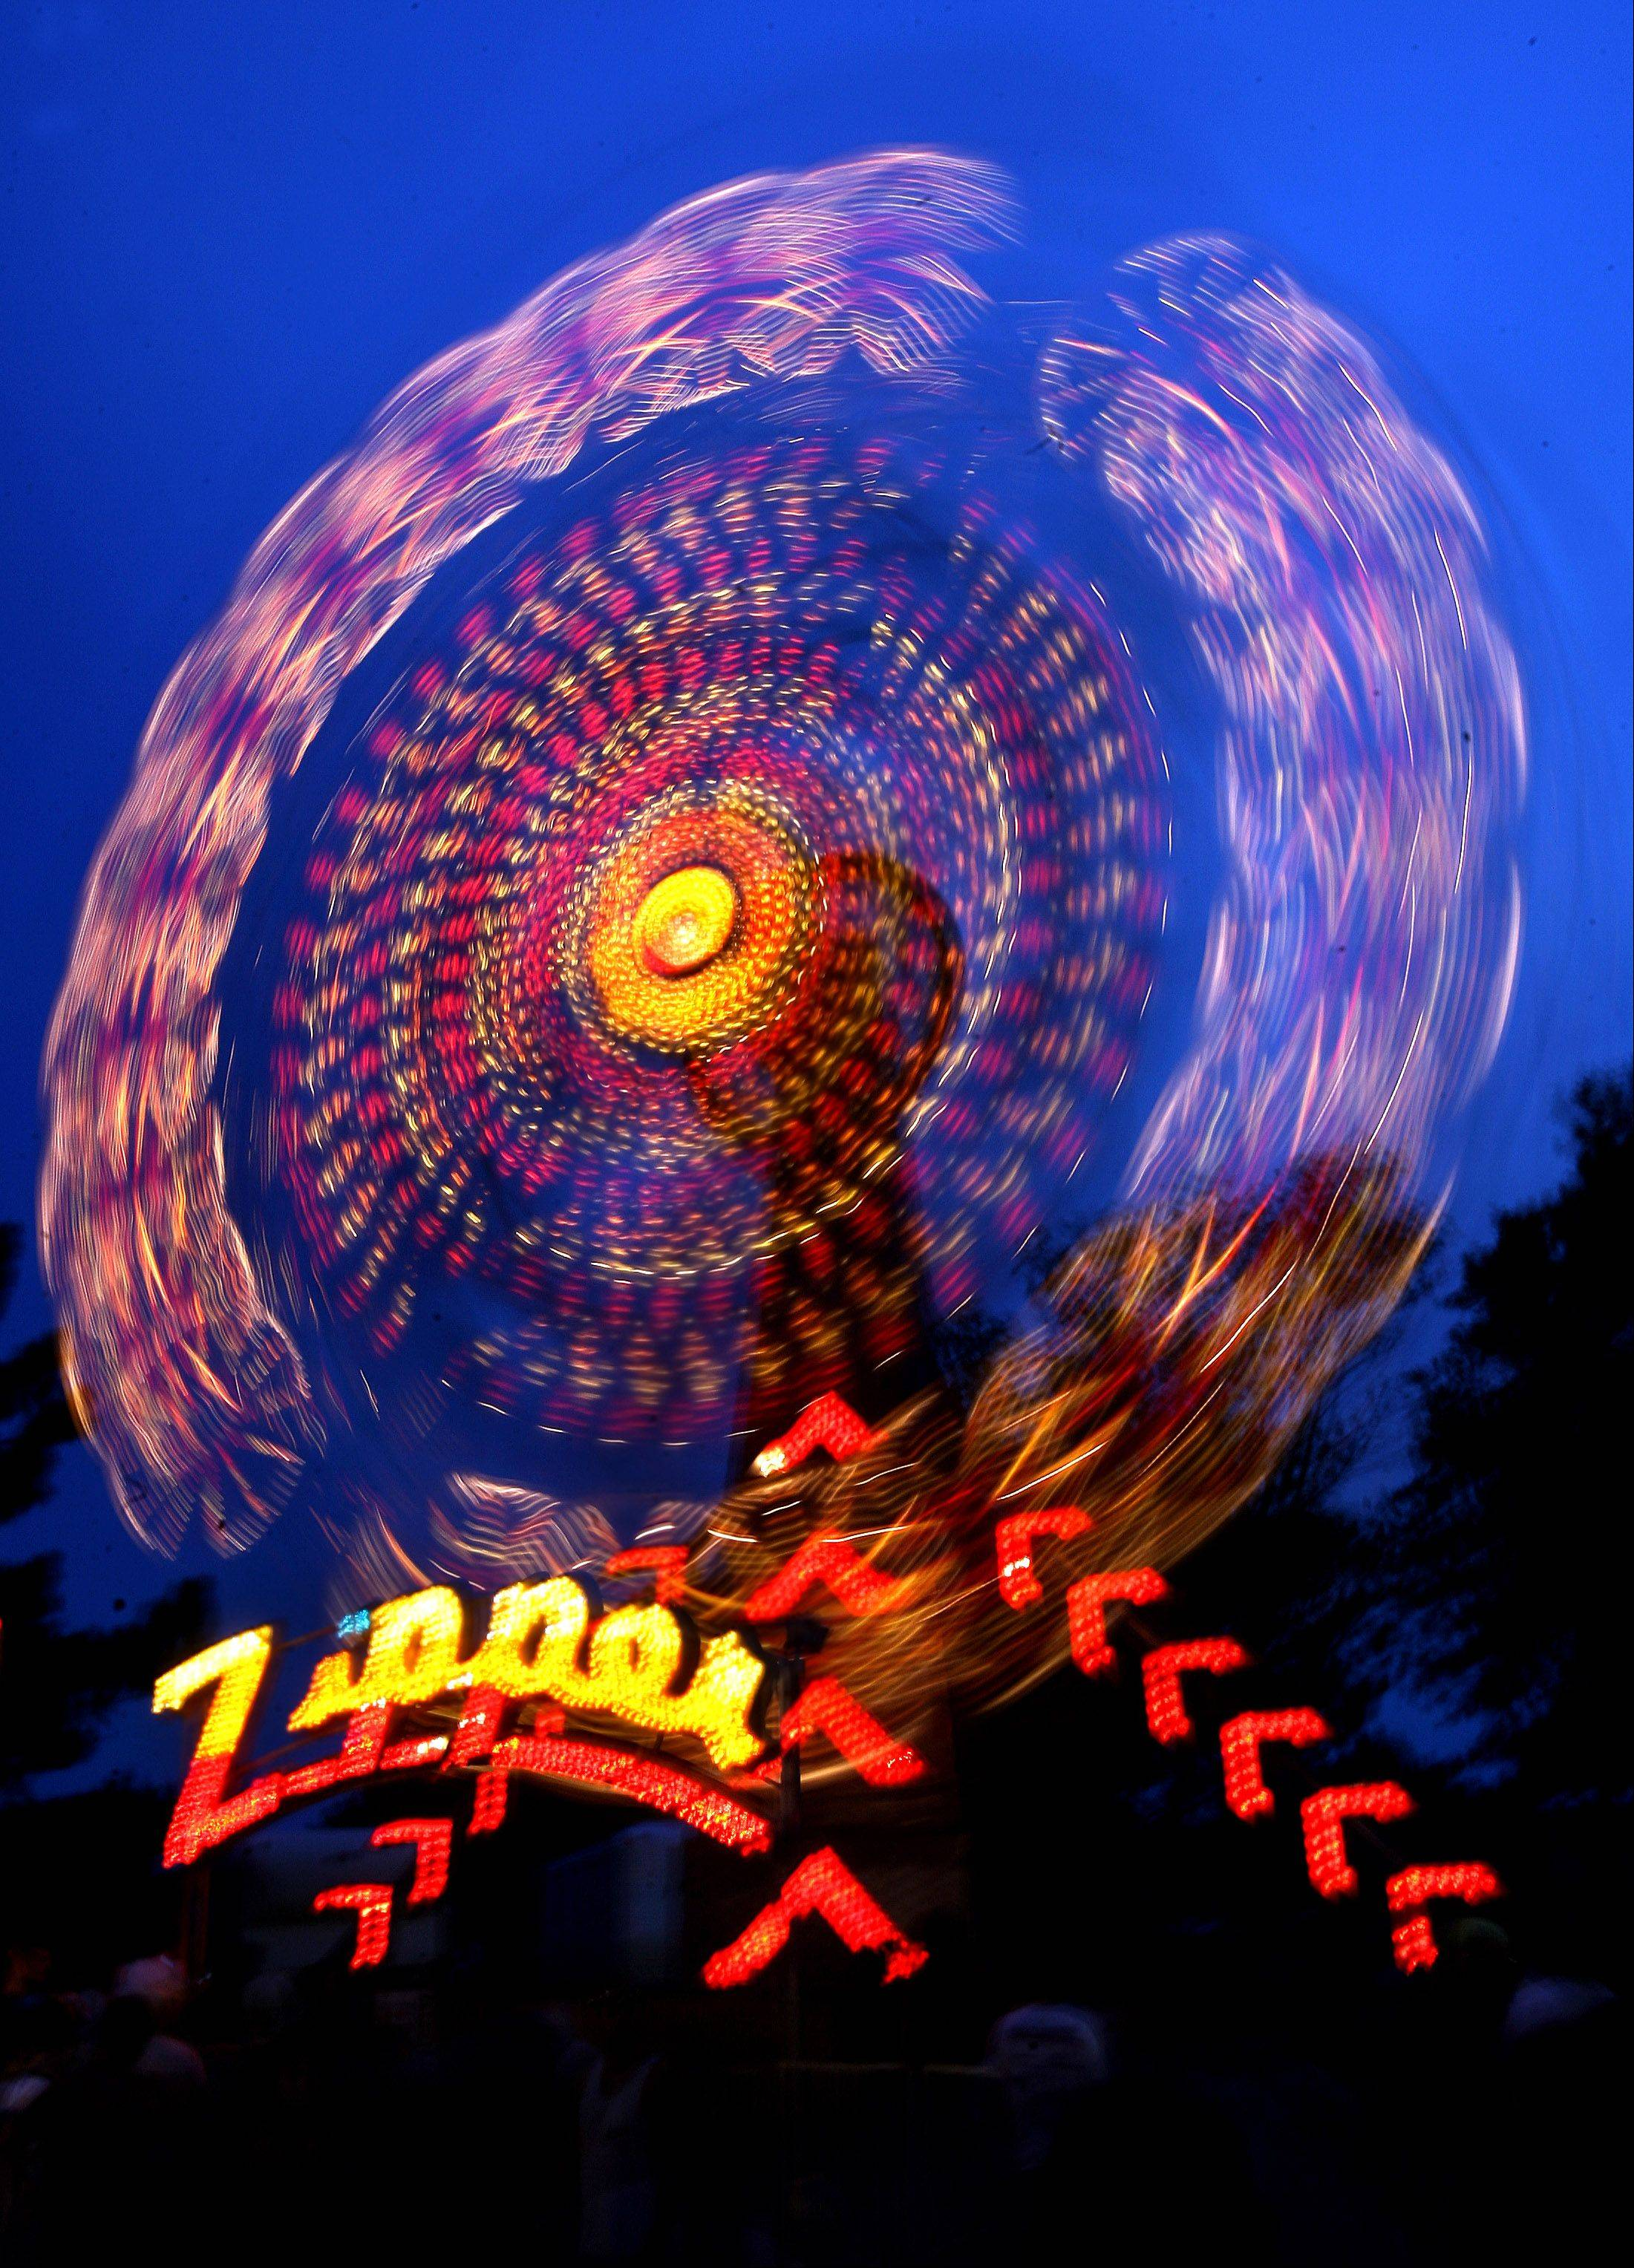 Carnival rides are a popular draw of Vernon Hills Summer Celebration.